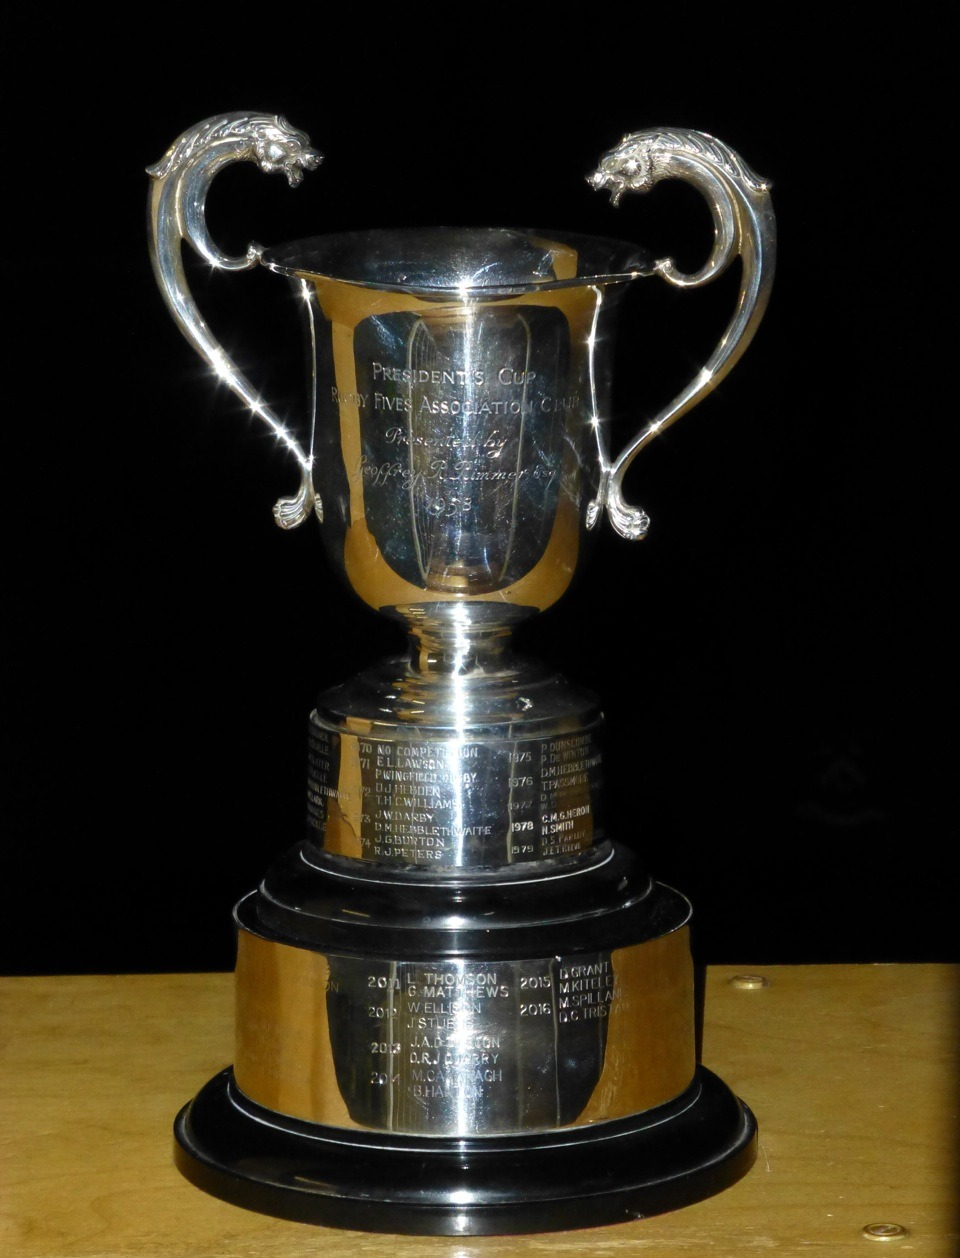 The President's Cup in all its glory